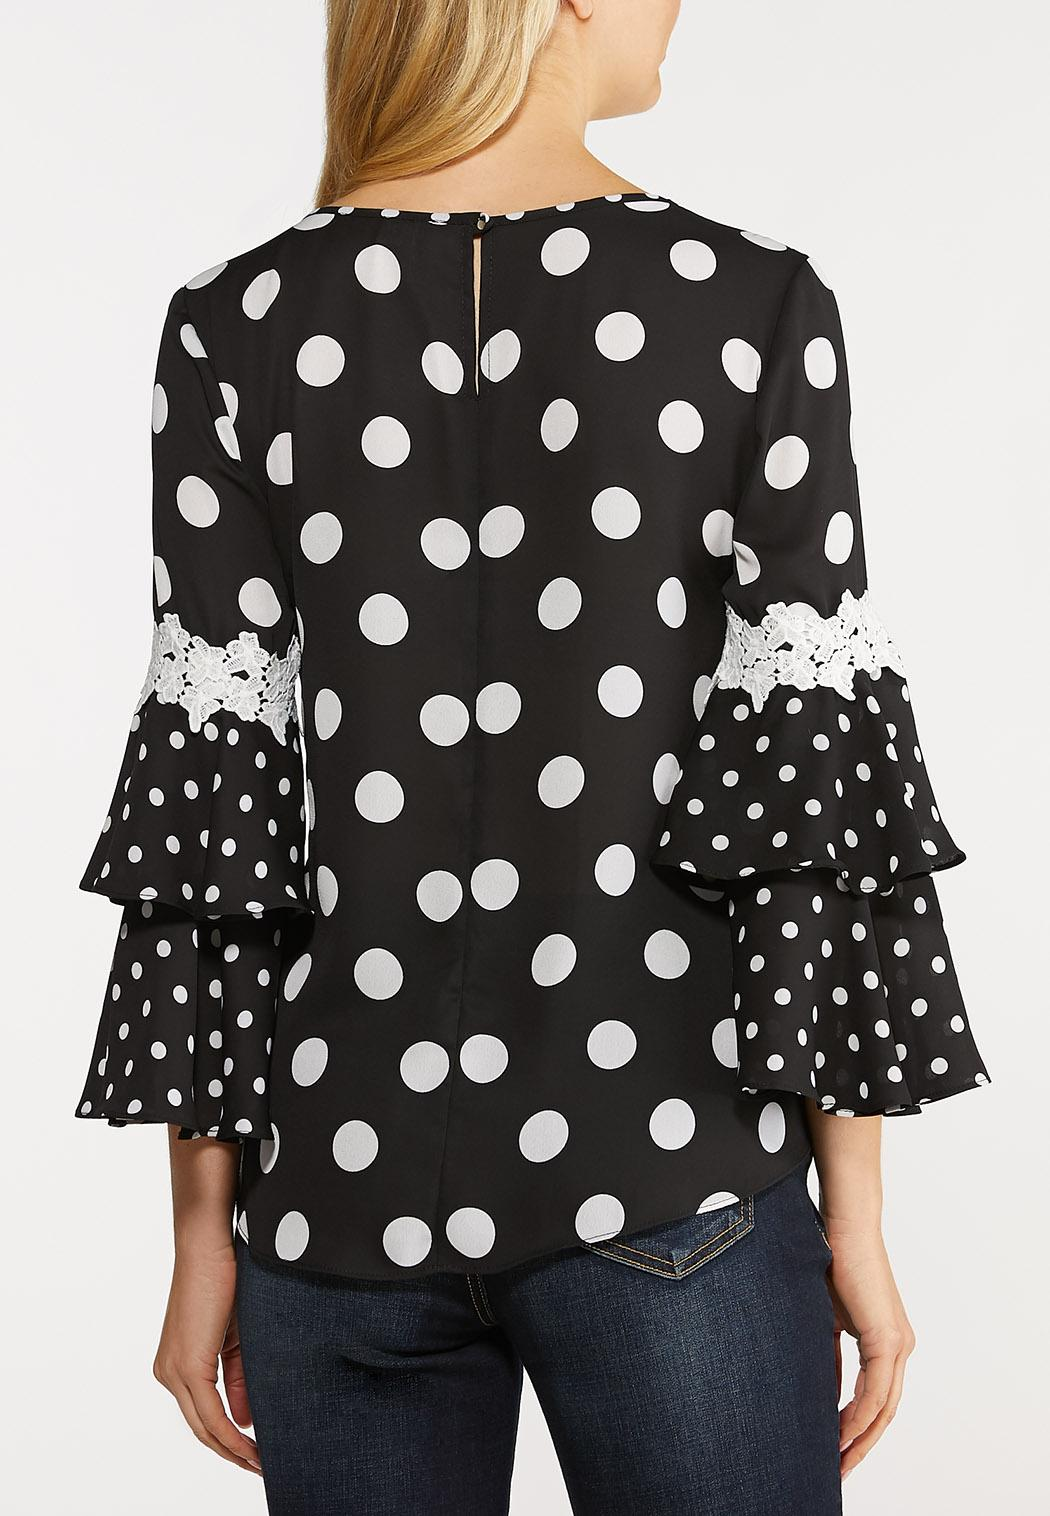 Black And White Dotted Top (Item #44124898)